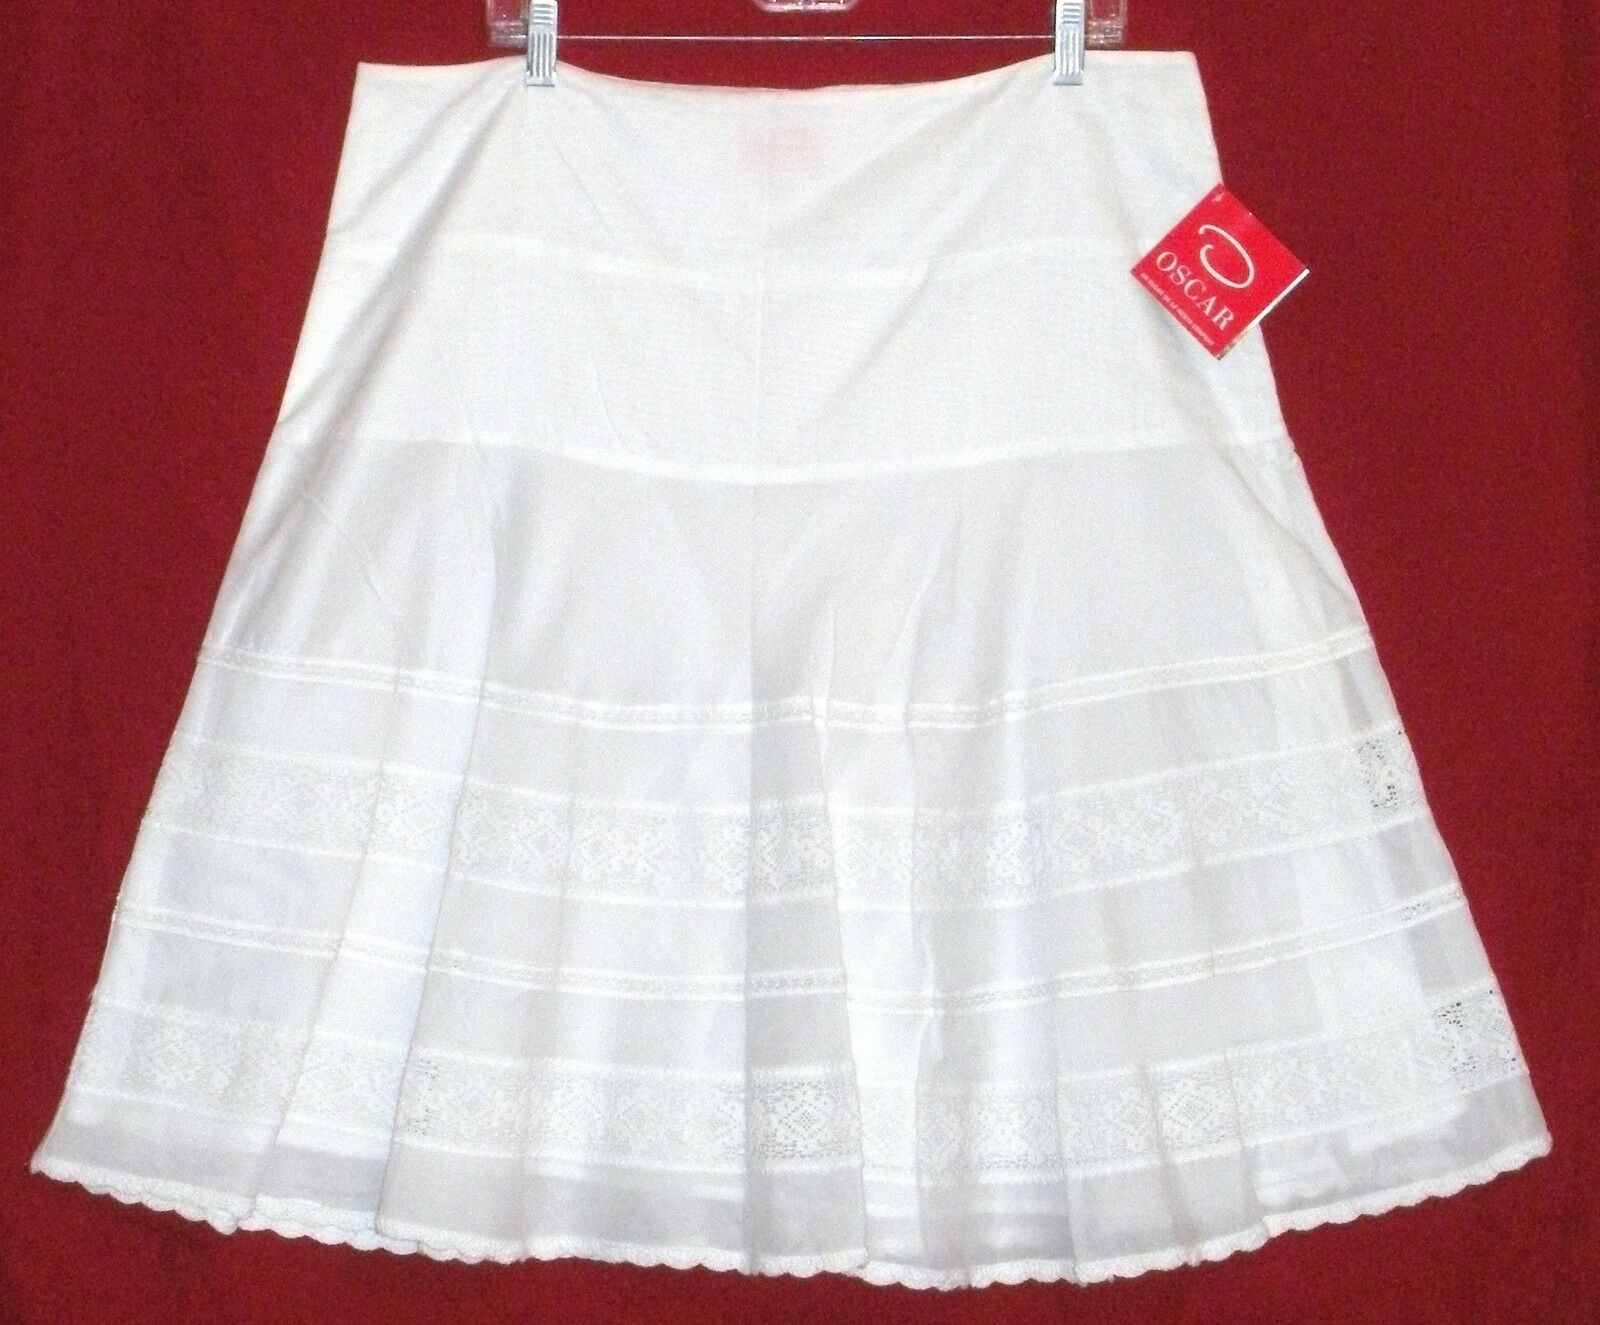 New With Tag  OSCAR DE LA RENTA Women's White Skirt Size 16, MSRP  129